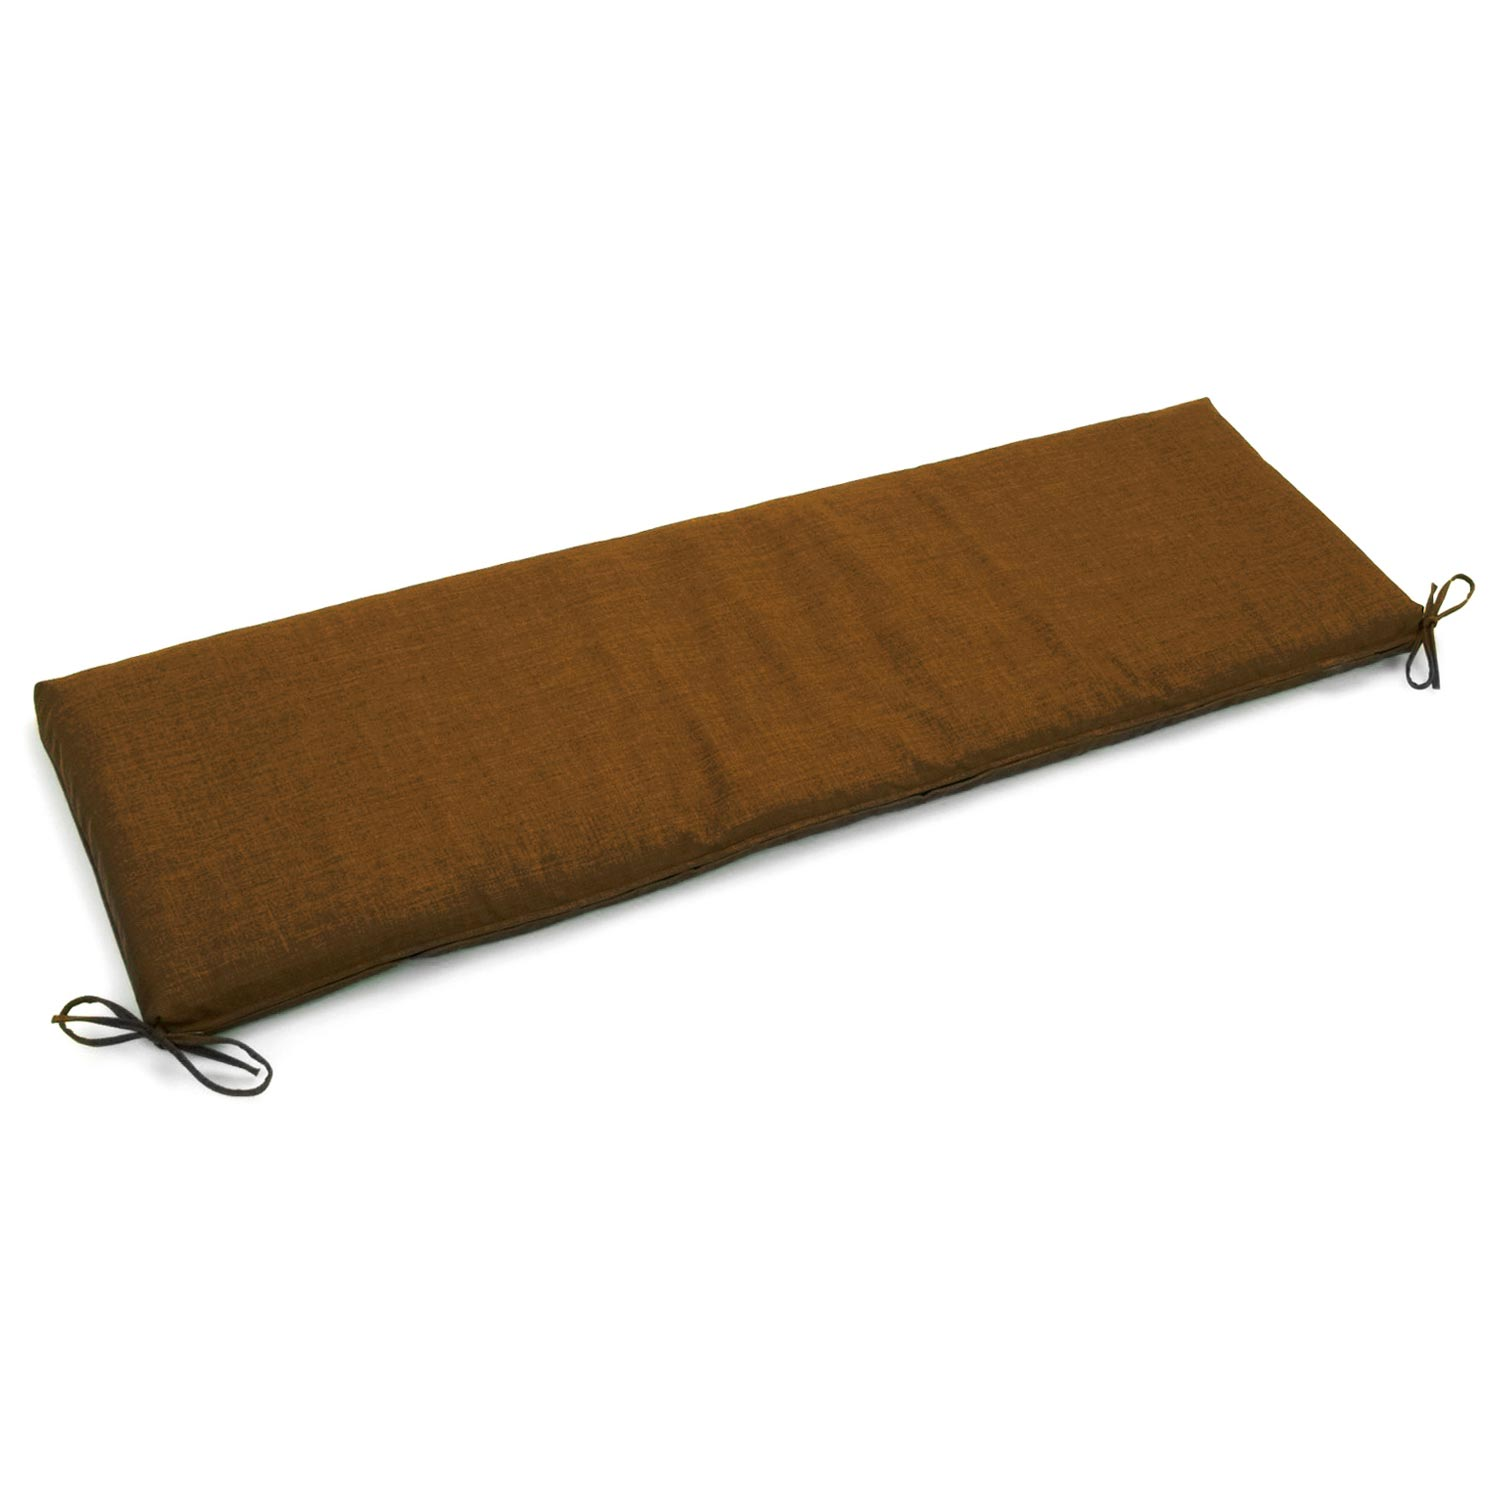 "54"" x 19"" Patio Bench / Swing Cushion - Ties, Solid Color Fabric - BLZ-954X19-REO-S"